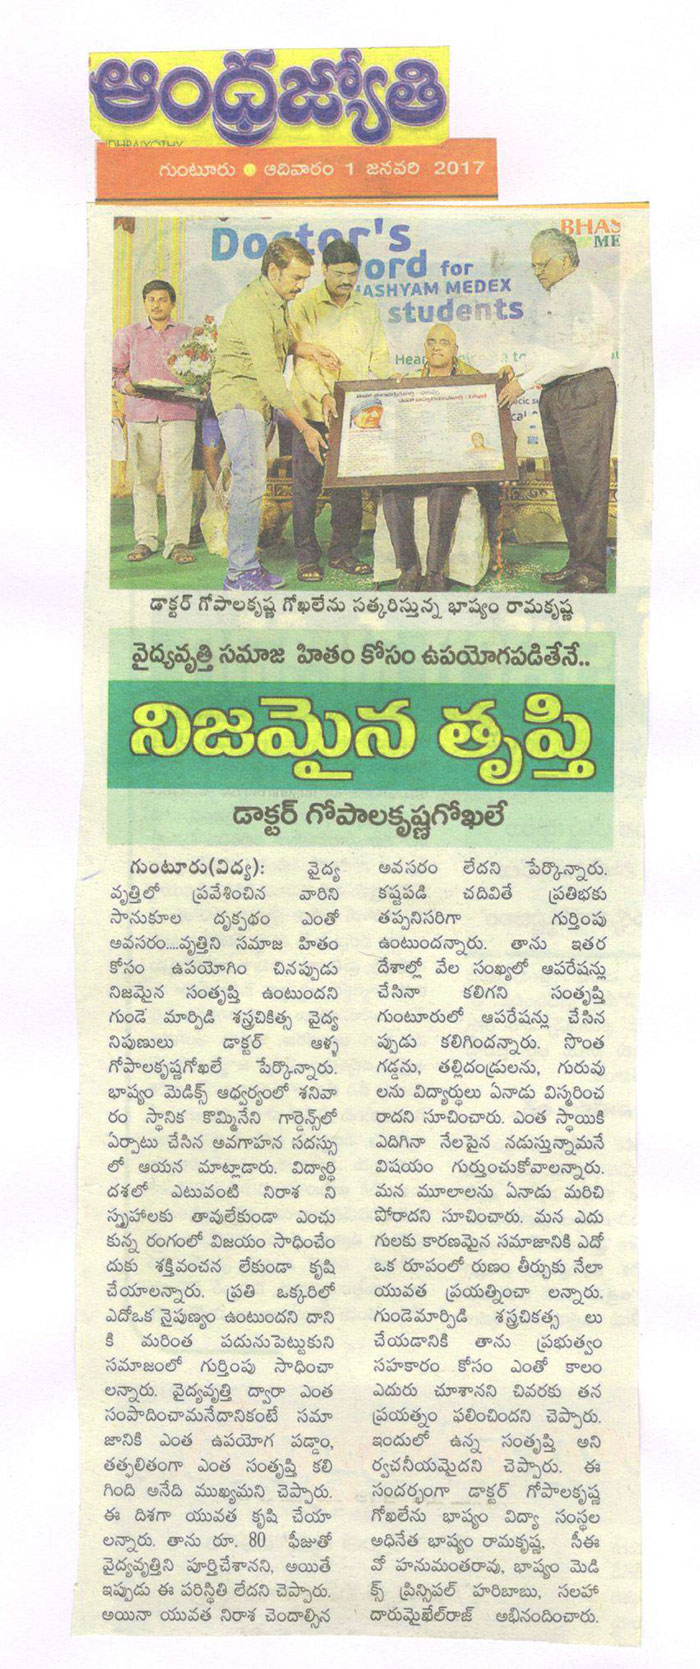 Bhashyam Educational Group Felicitated Dr. Gokhale in Guntur